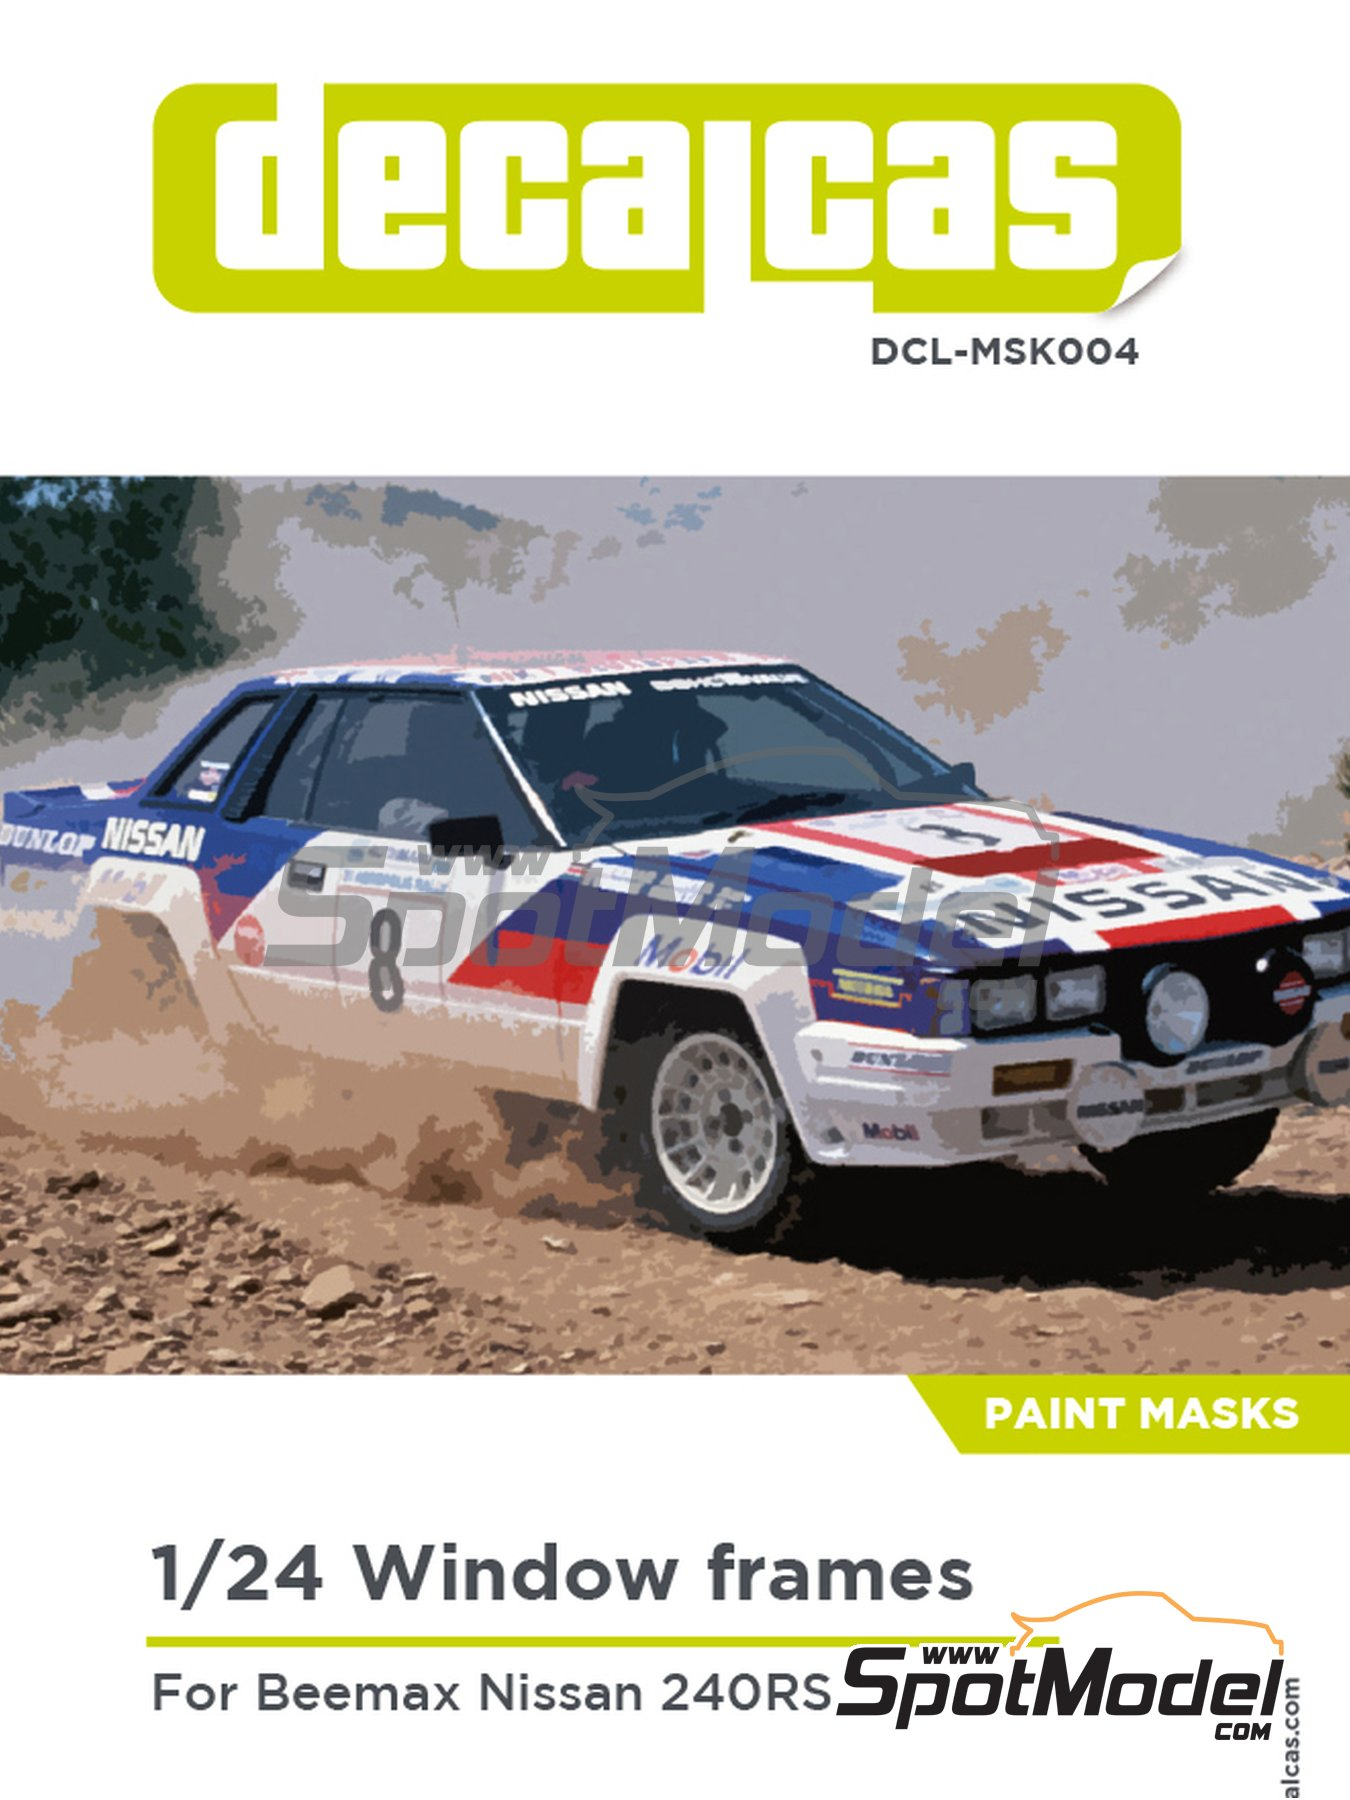 Nissan 240RS | Window frame paint masks in 1/24 scale manufactured by Decalcas (ref.DCL-MSK004) image